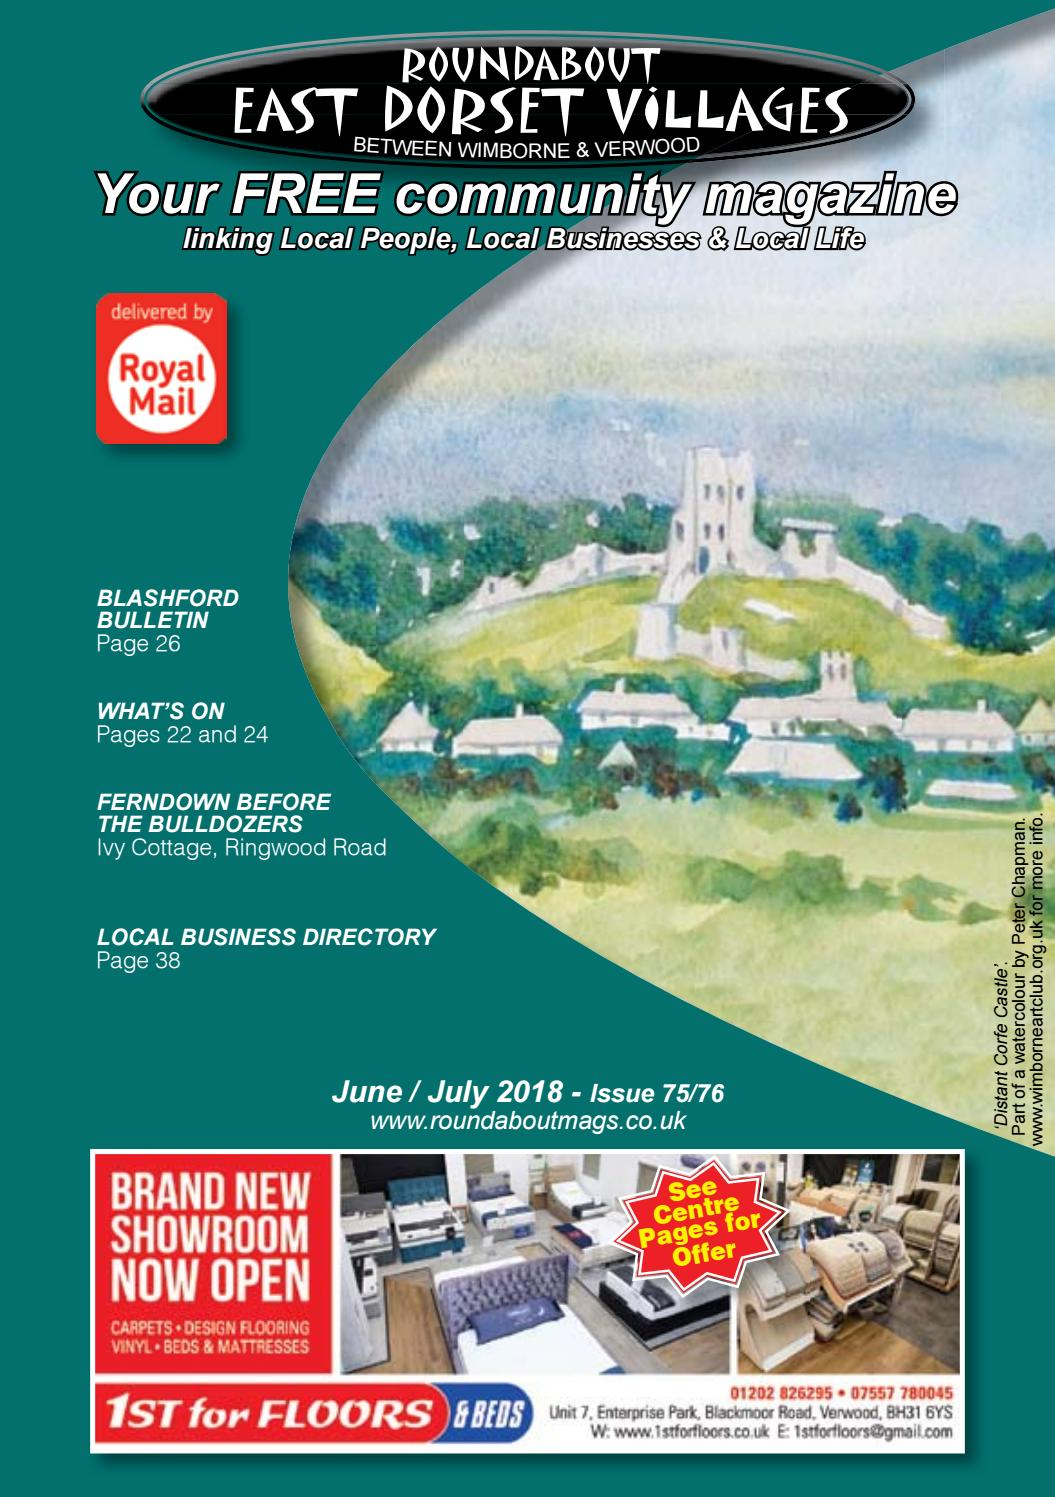 Roundabout East Dorset Villages June 2018 by Sue West - issuu